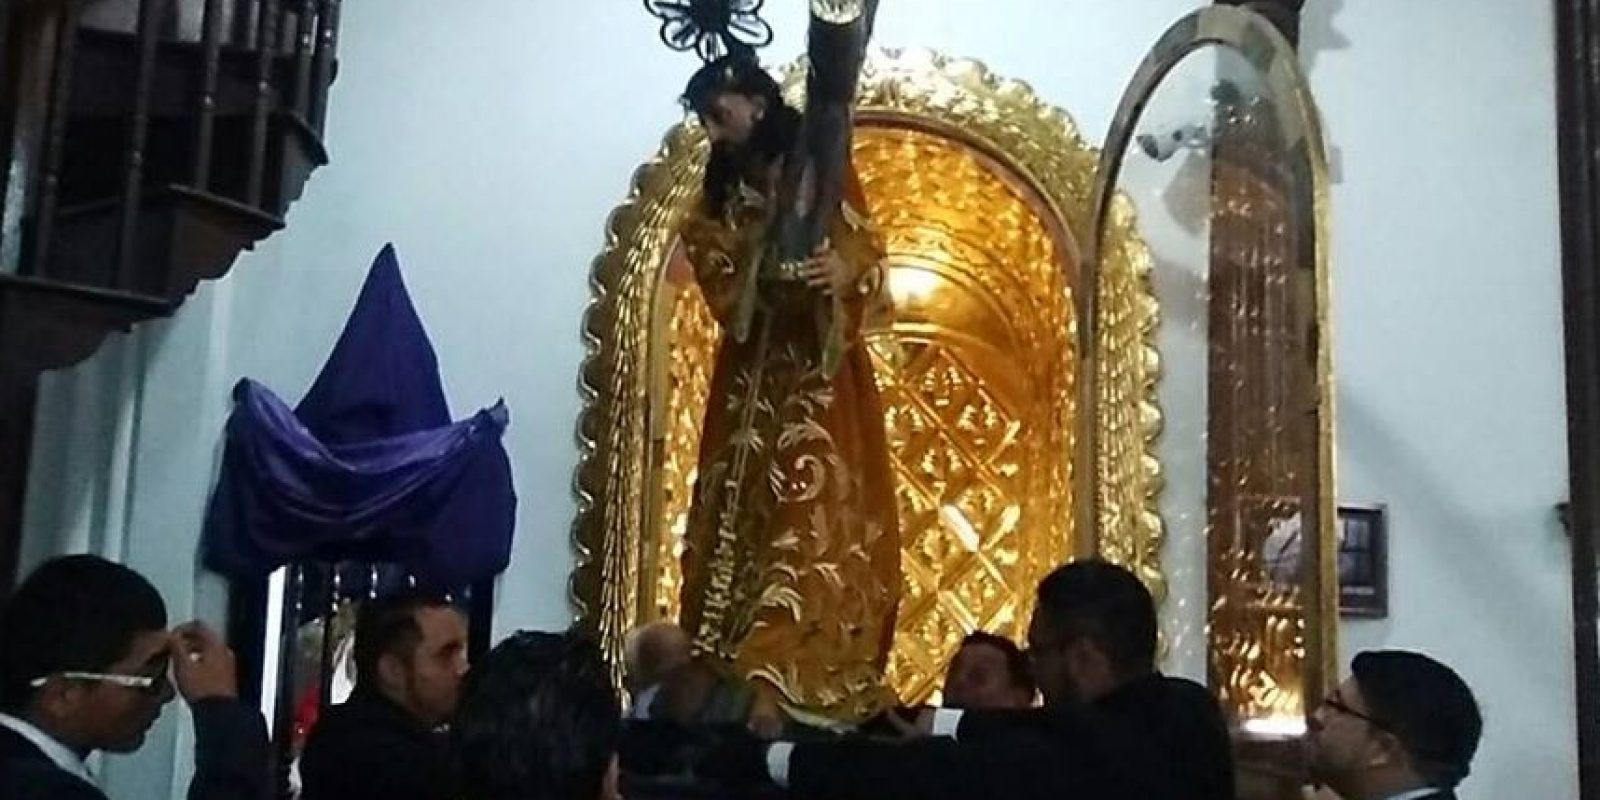 Foto: Facebook/Rectoría de Capuchinas